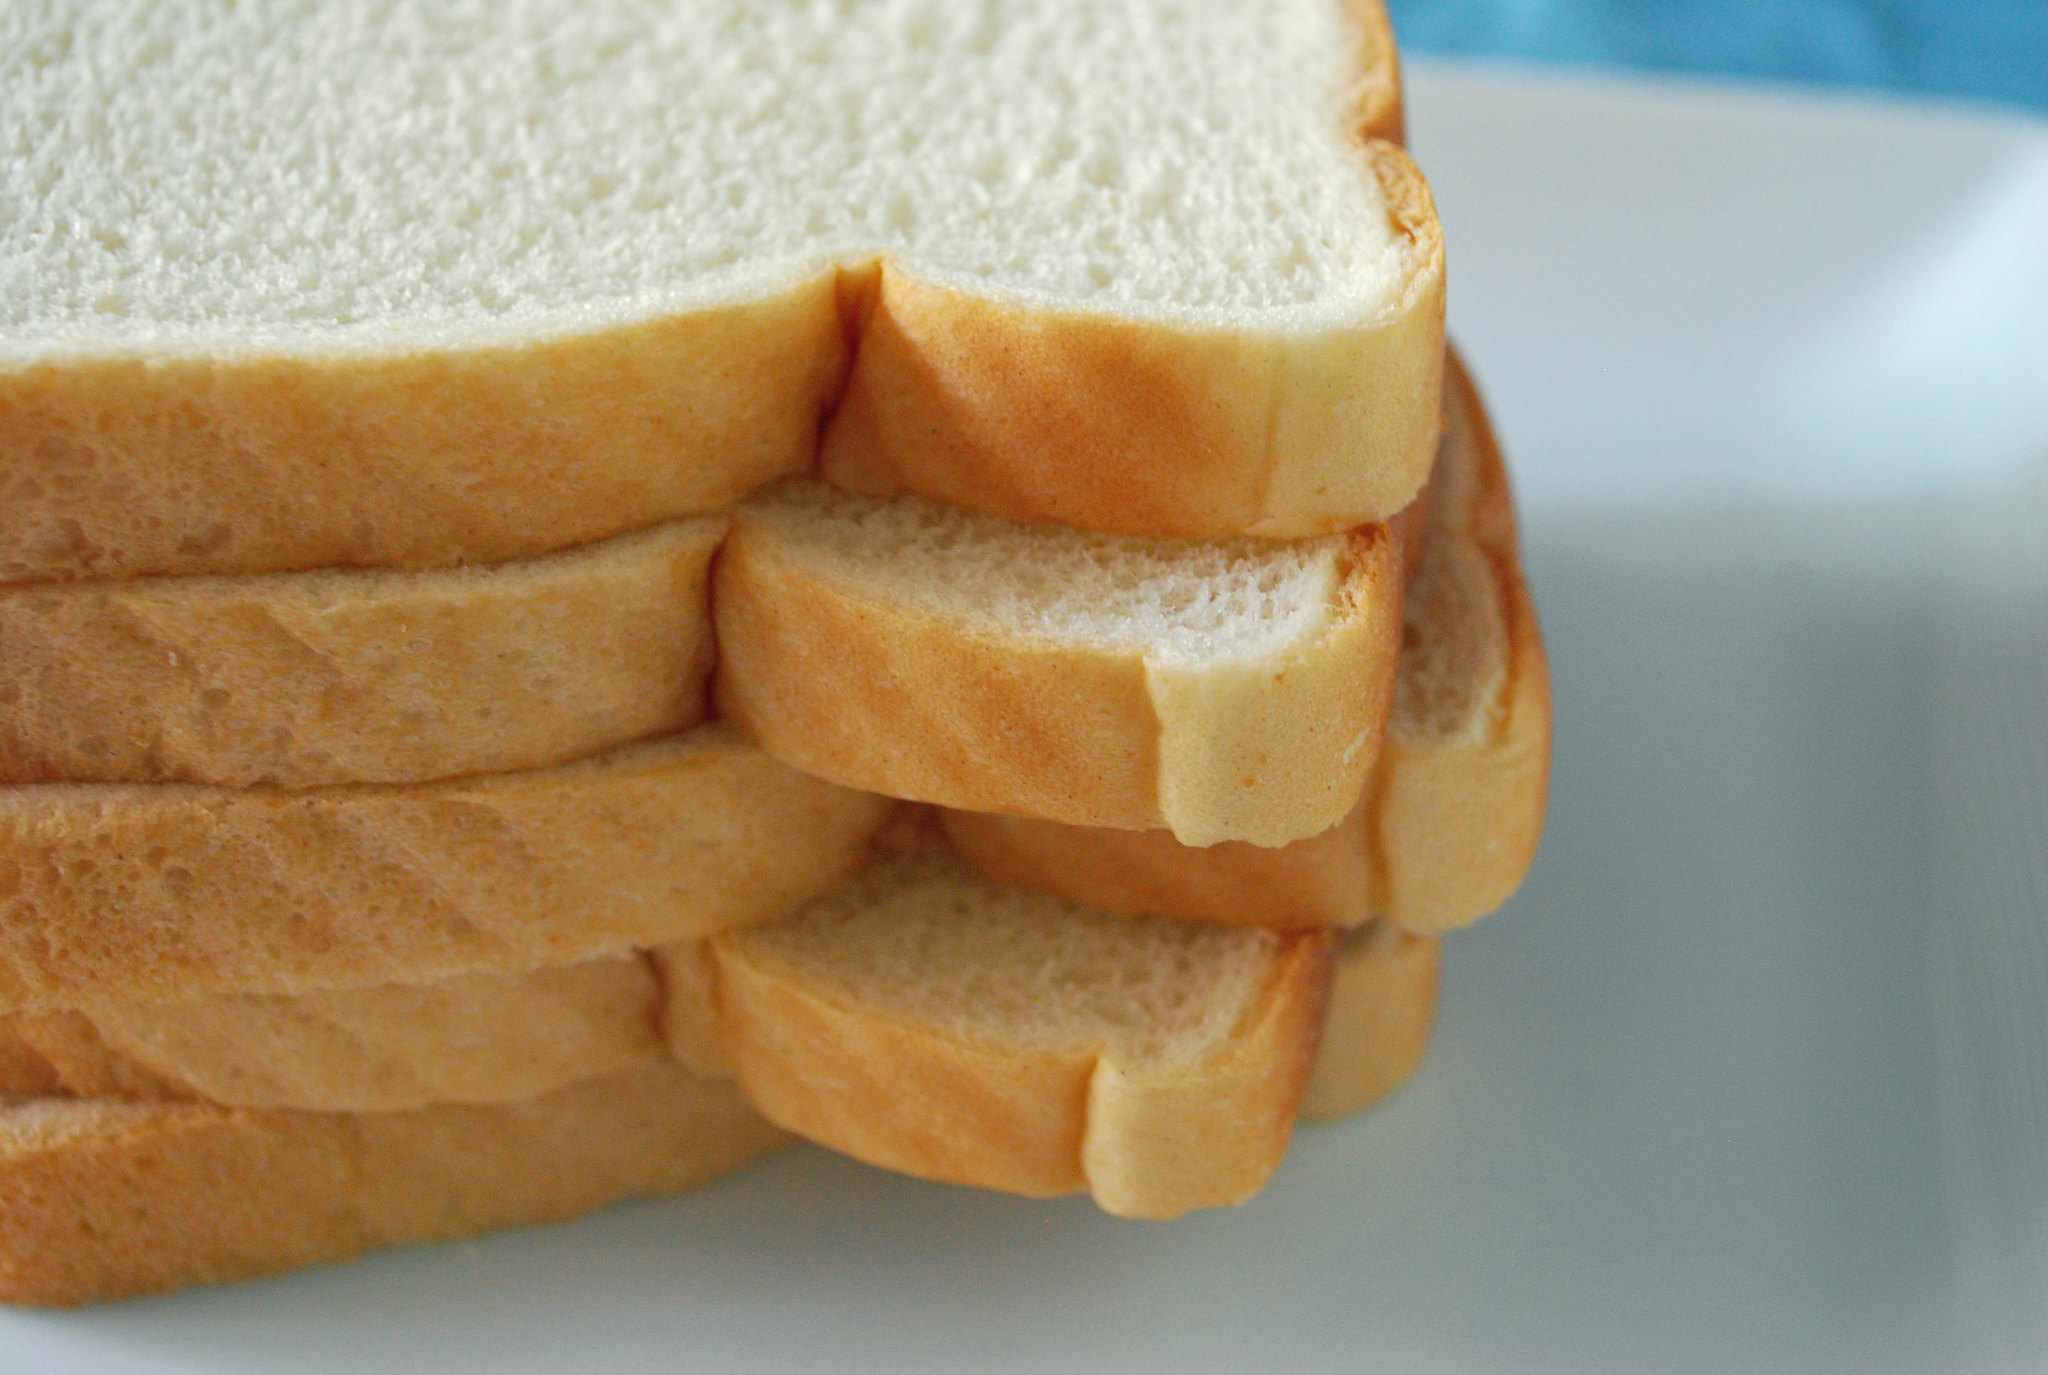 Mandatory folic acid in bread to reduce birth defects – Expert Reaction